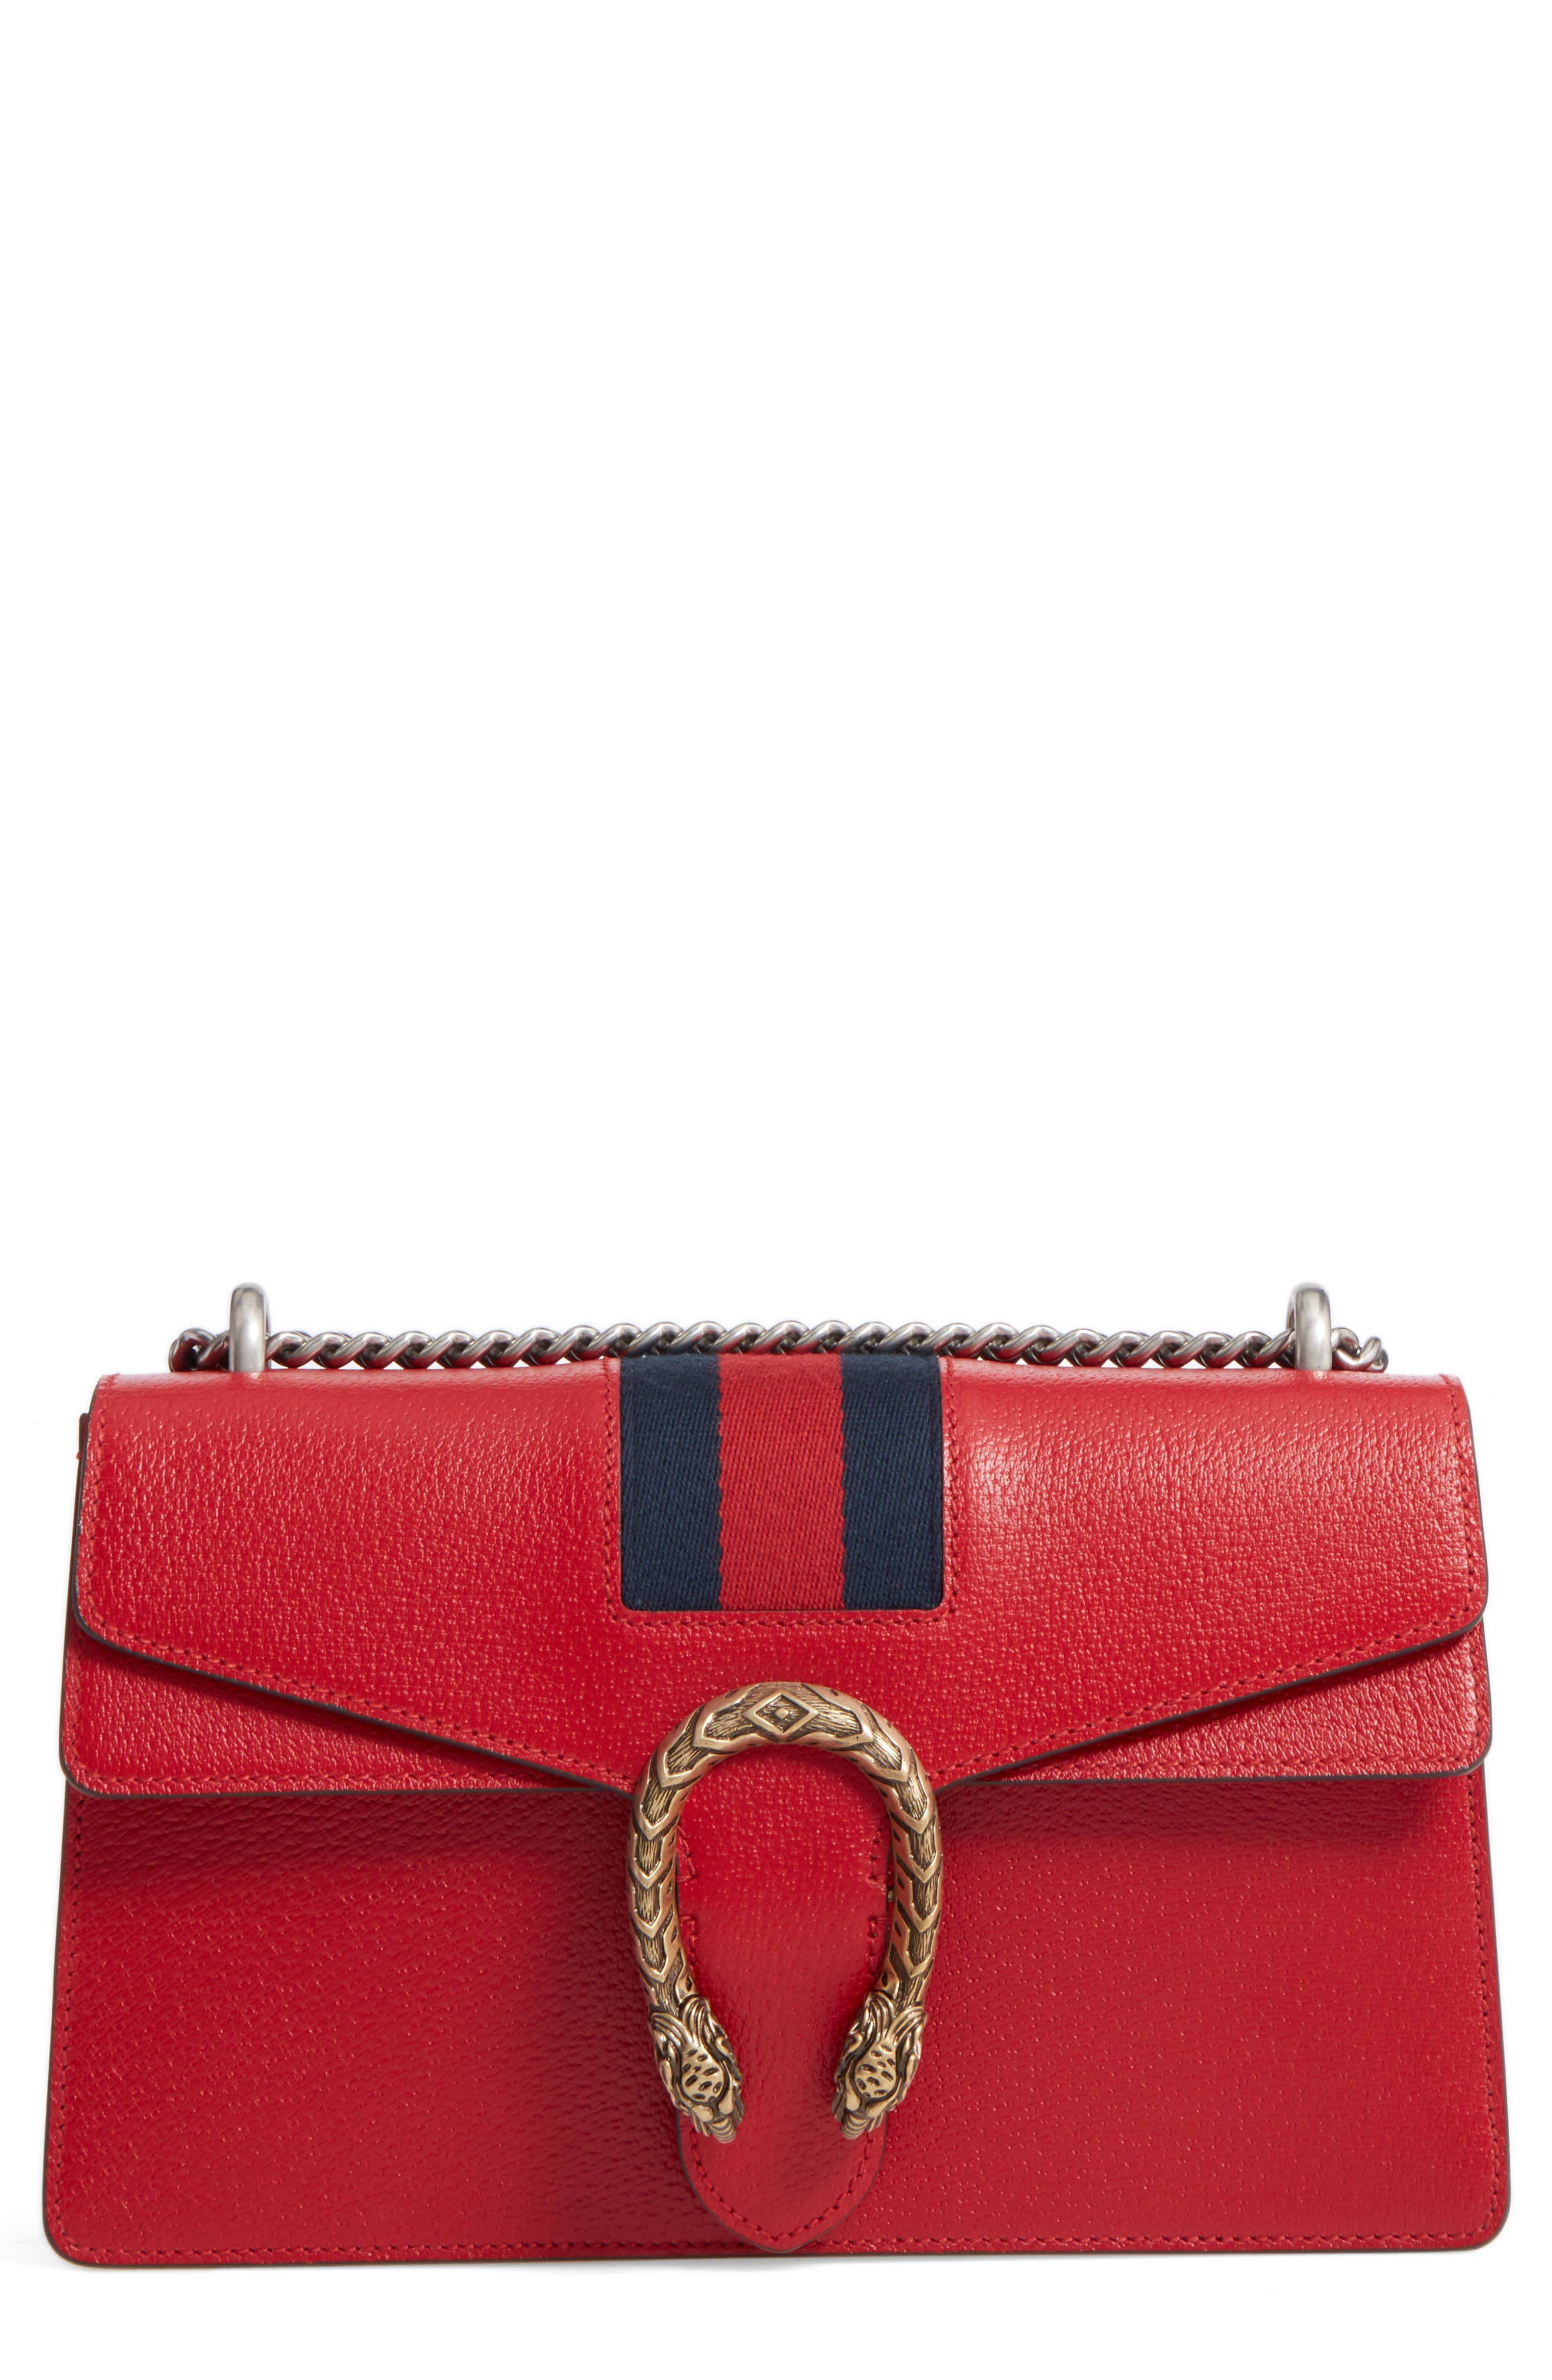 gucci bags new collection 2017. gucci dionysus leather shoulder bag bags new collection 2017